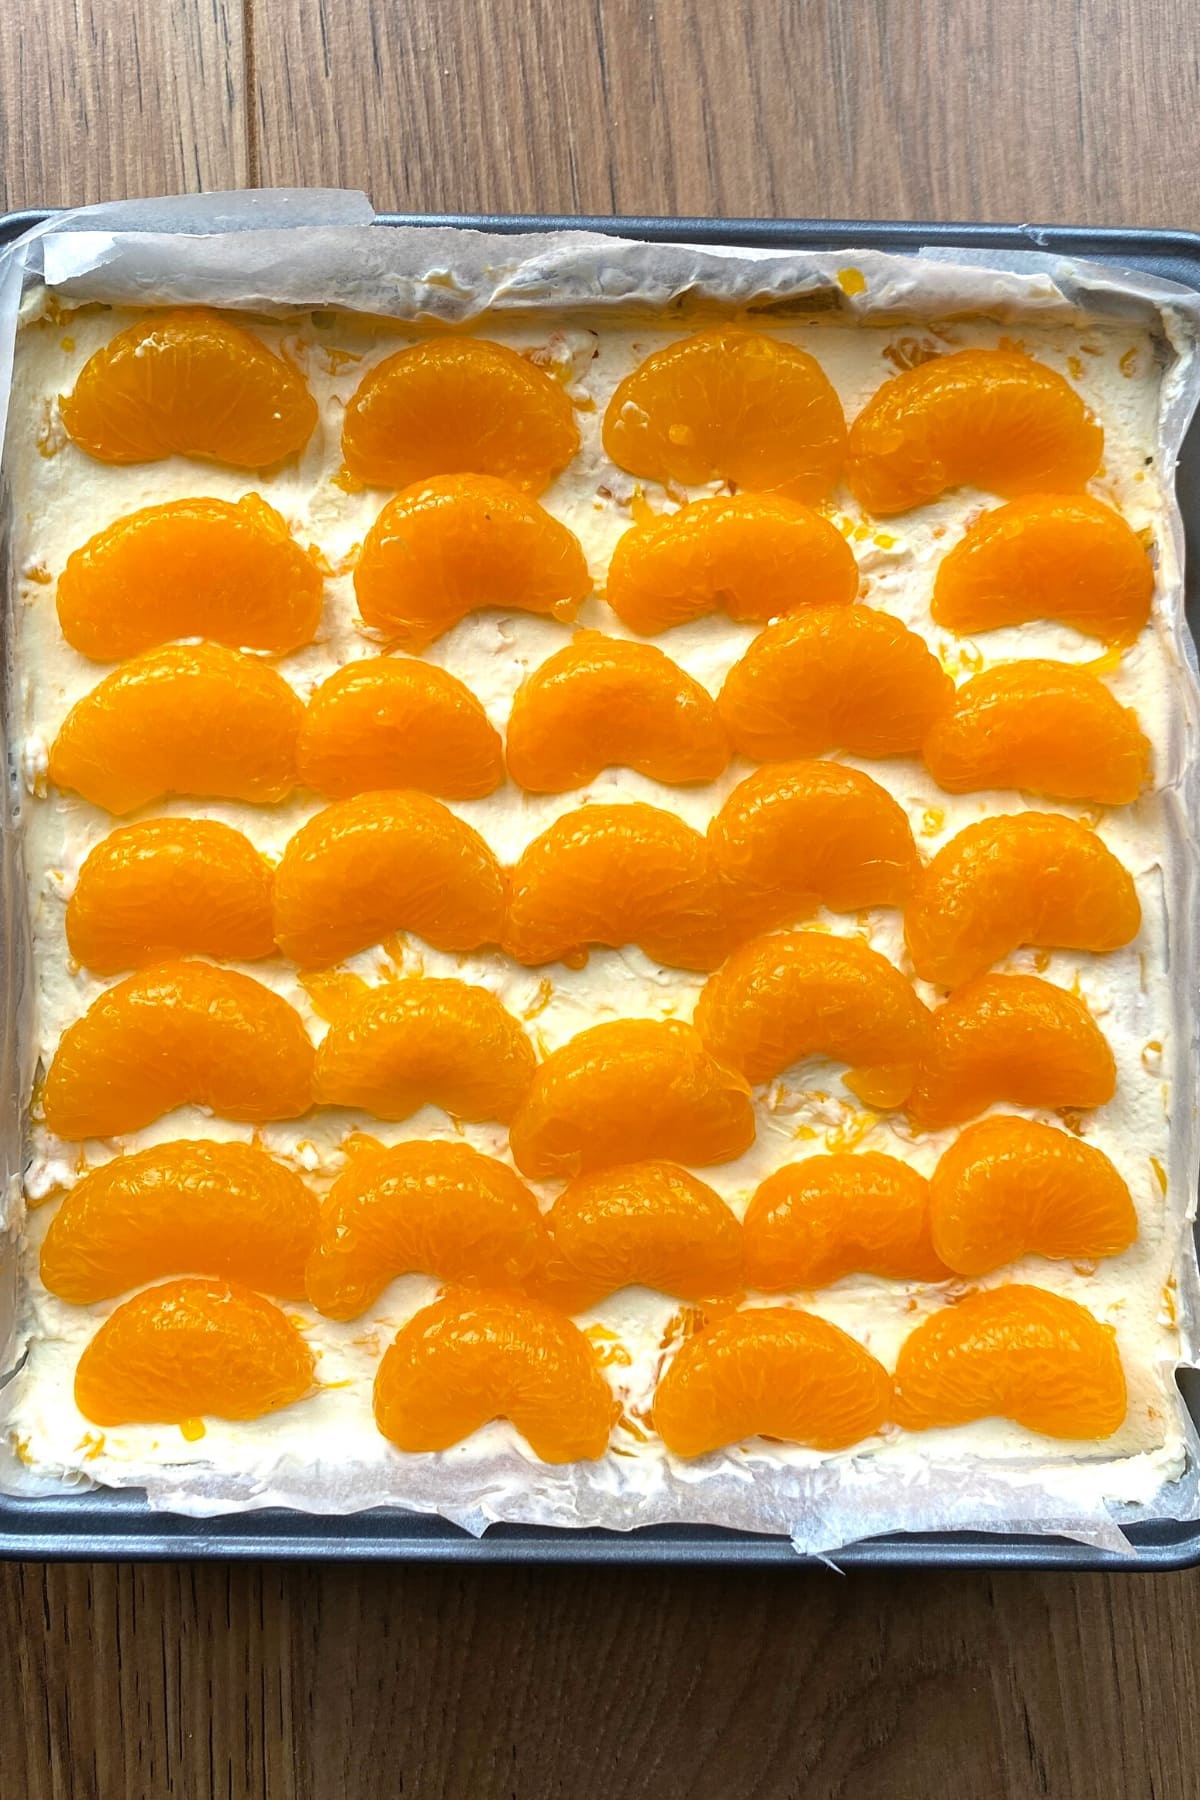 Decorate the top of cheesecake with mandarins